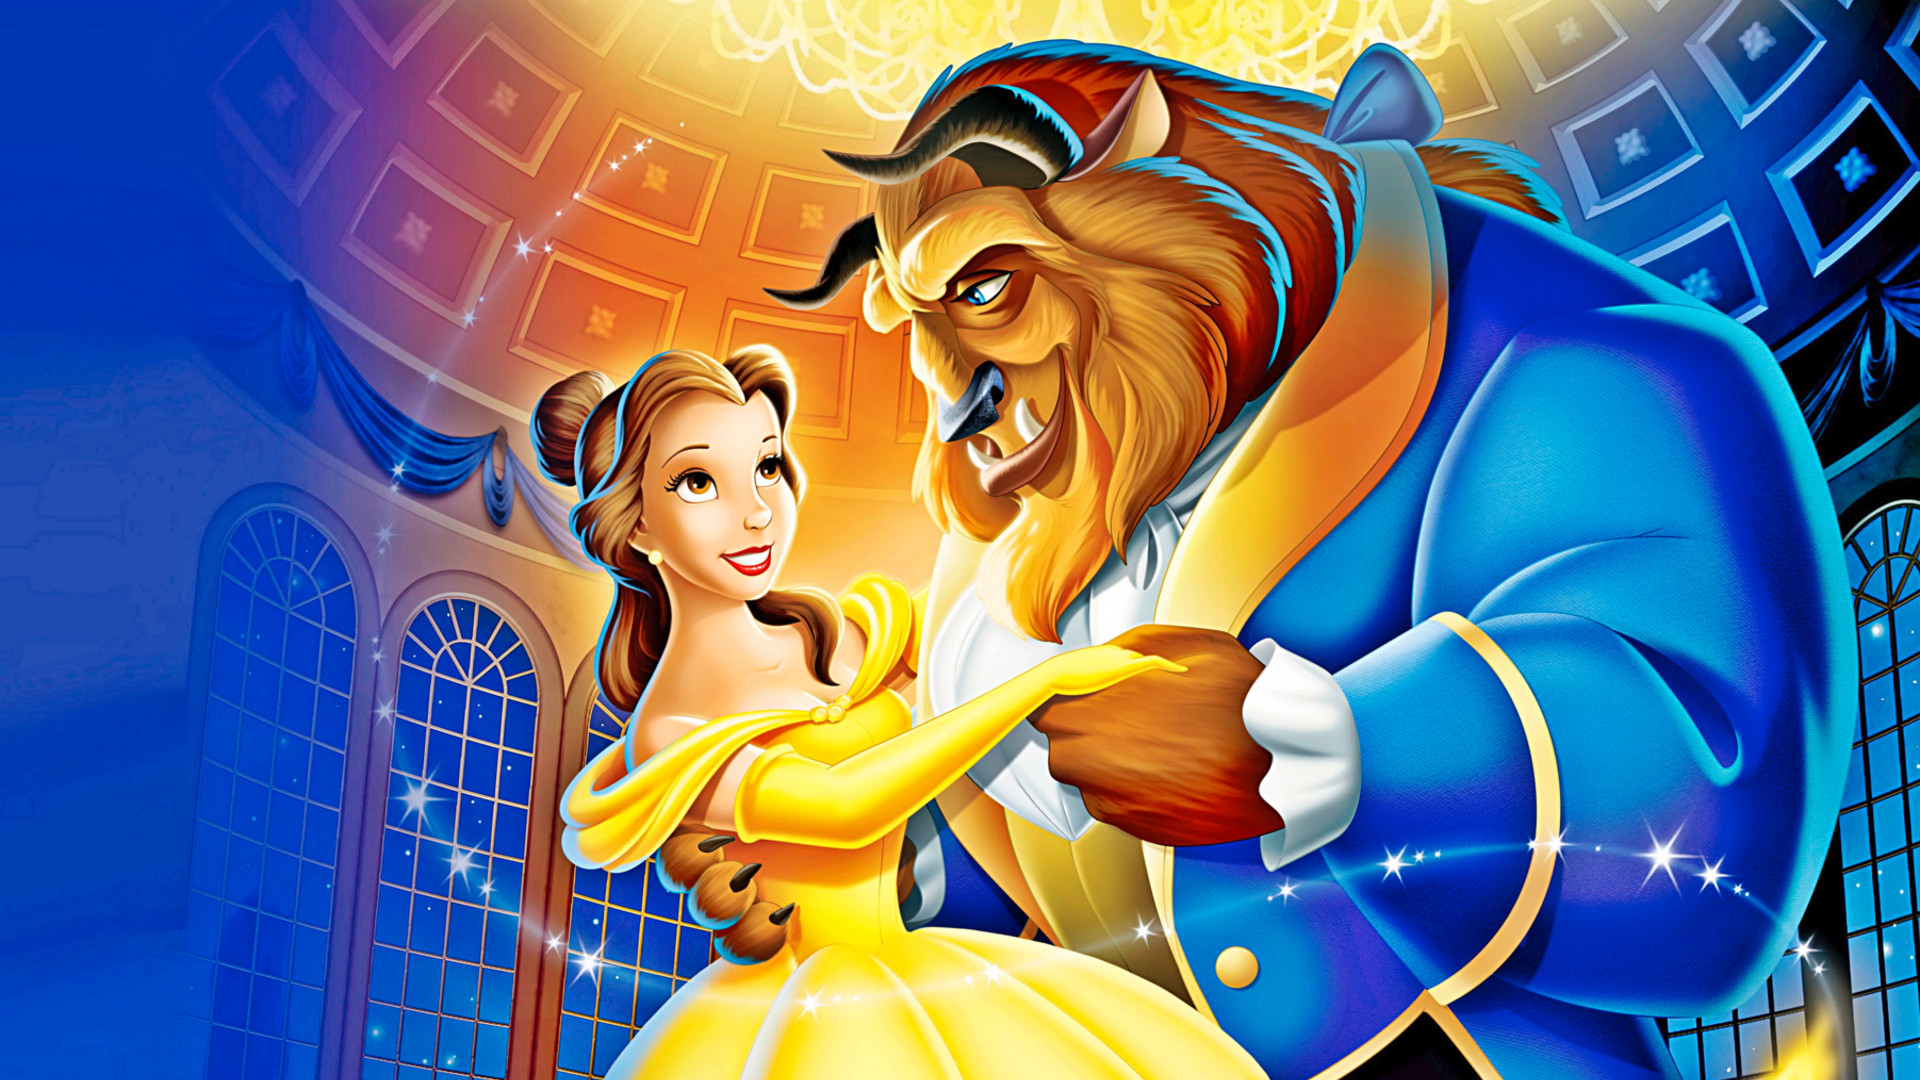 BEAUTY AND THE BEAST disney wallpaper | 1920x1080 | 101488 ...